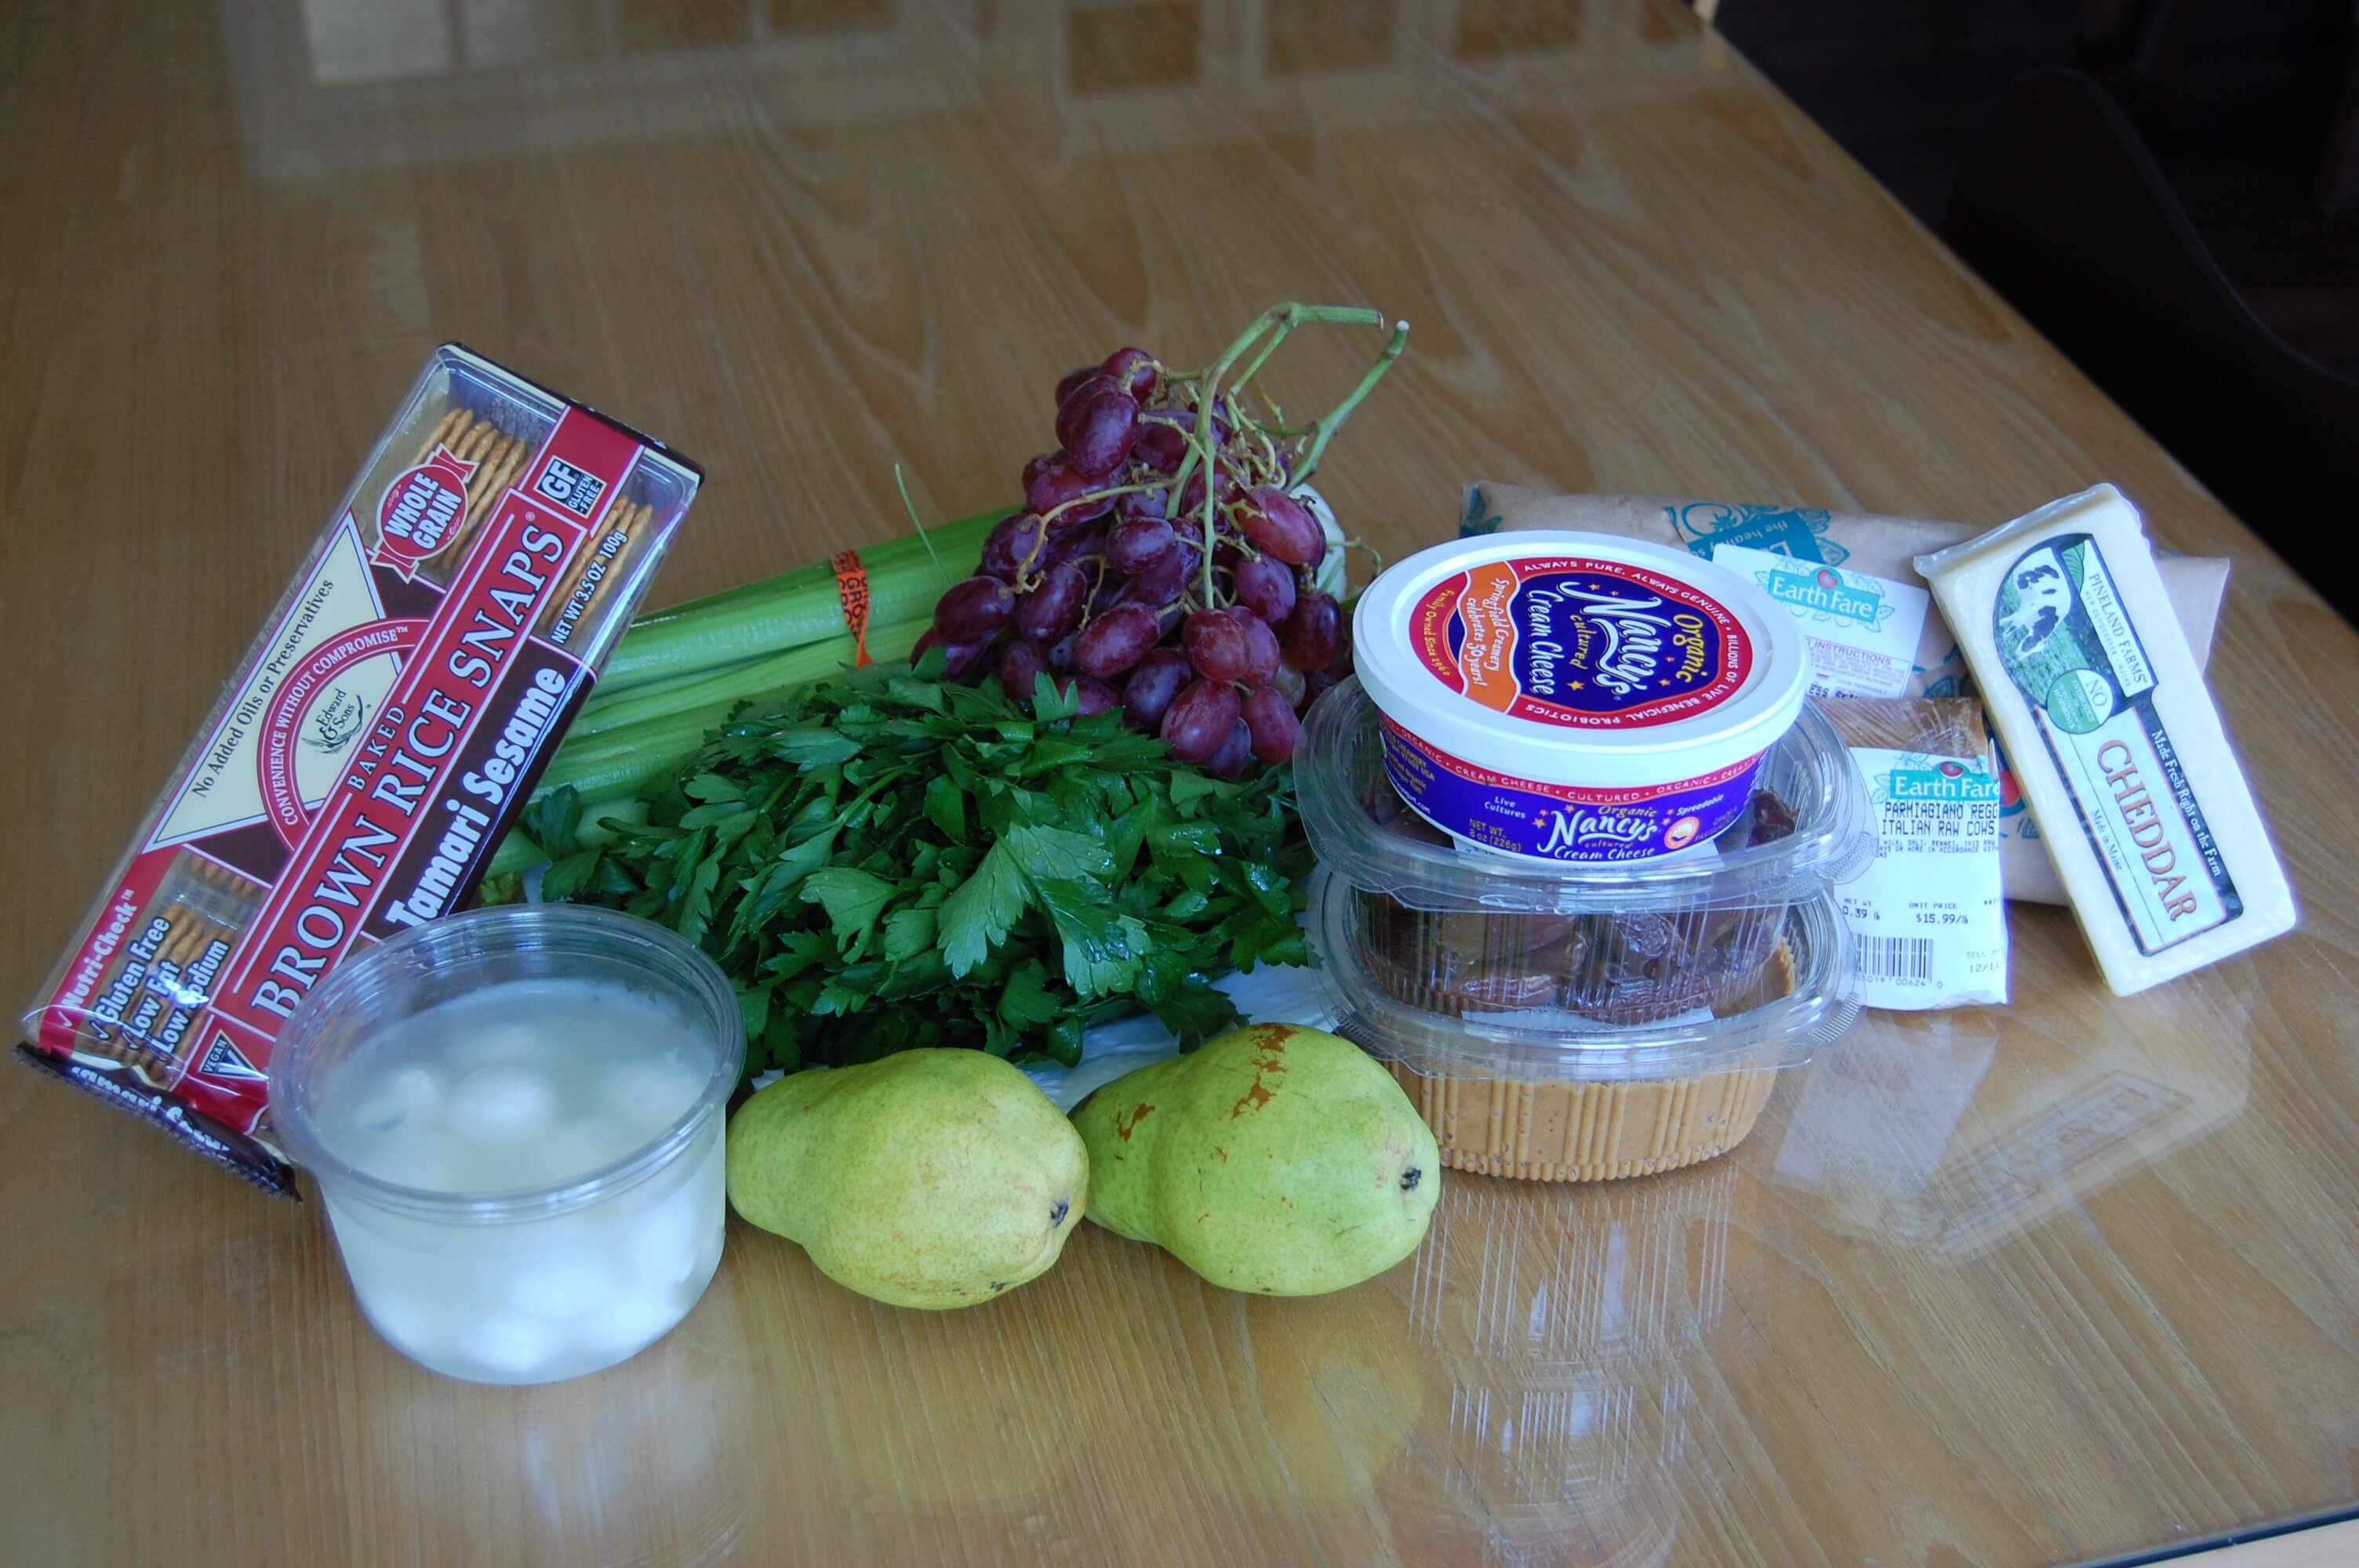 Groceries from Earthfare that include celery, dates, peanut butter, cheese, chicken breasts, frozen peas, brown rice crackers, grapes, pears, and parsley.